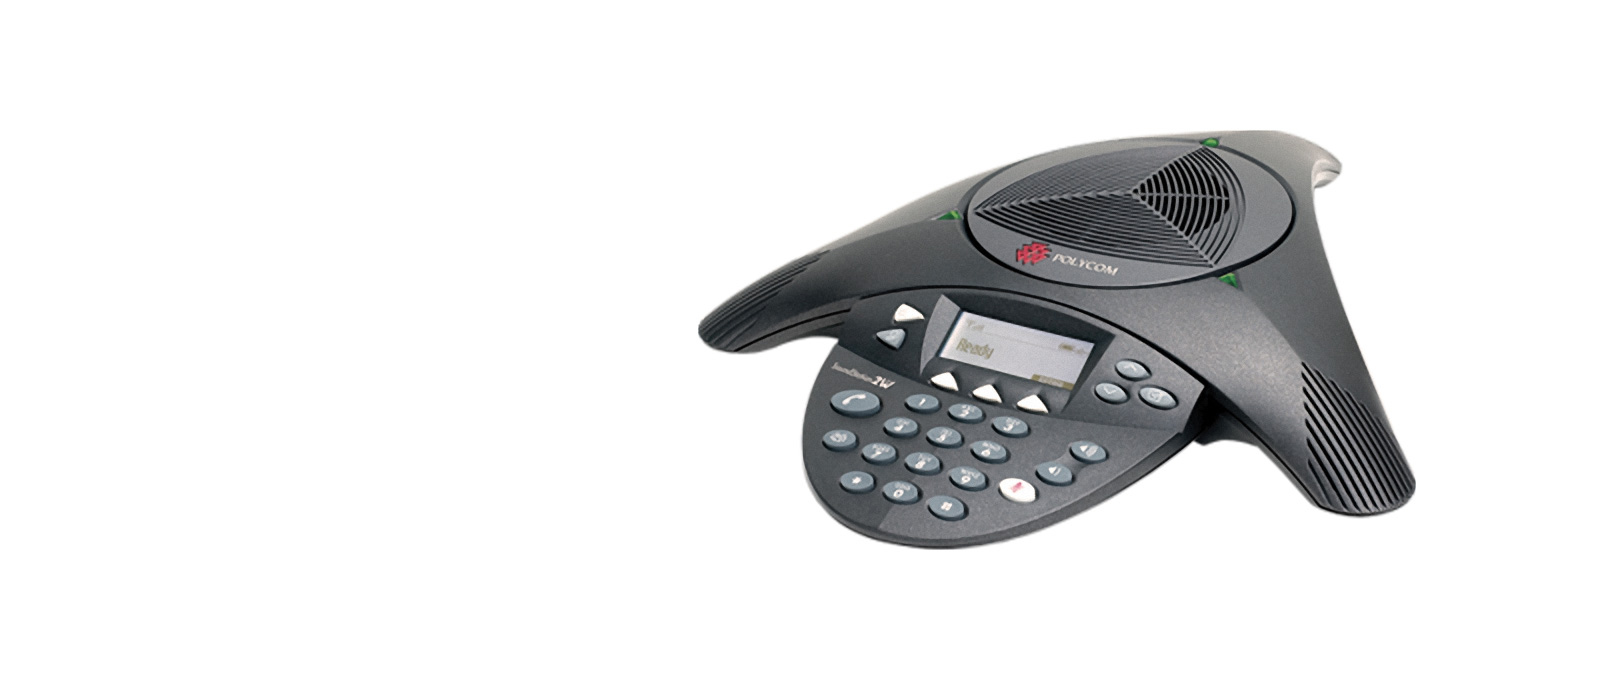 Polycom audio conferencing phone slider picture